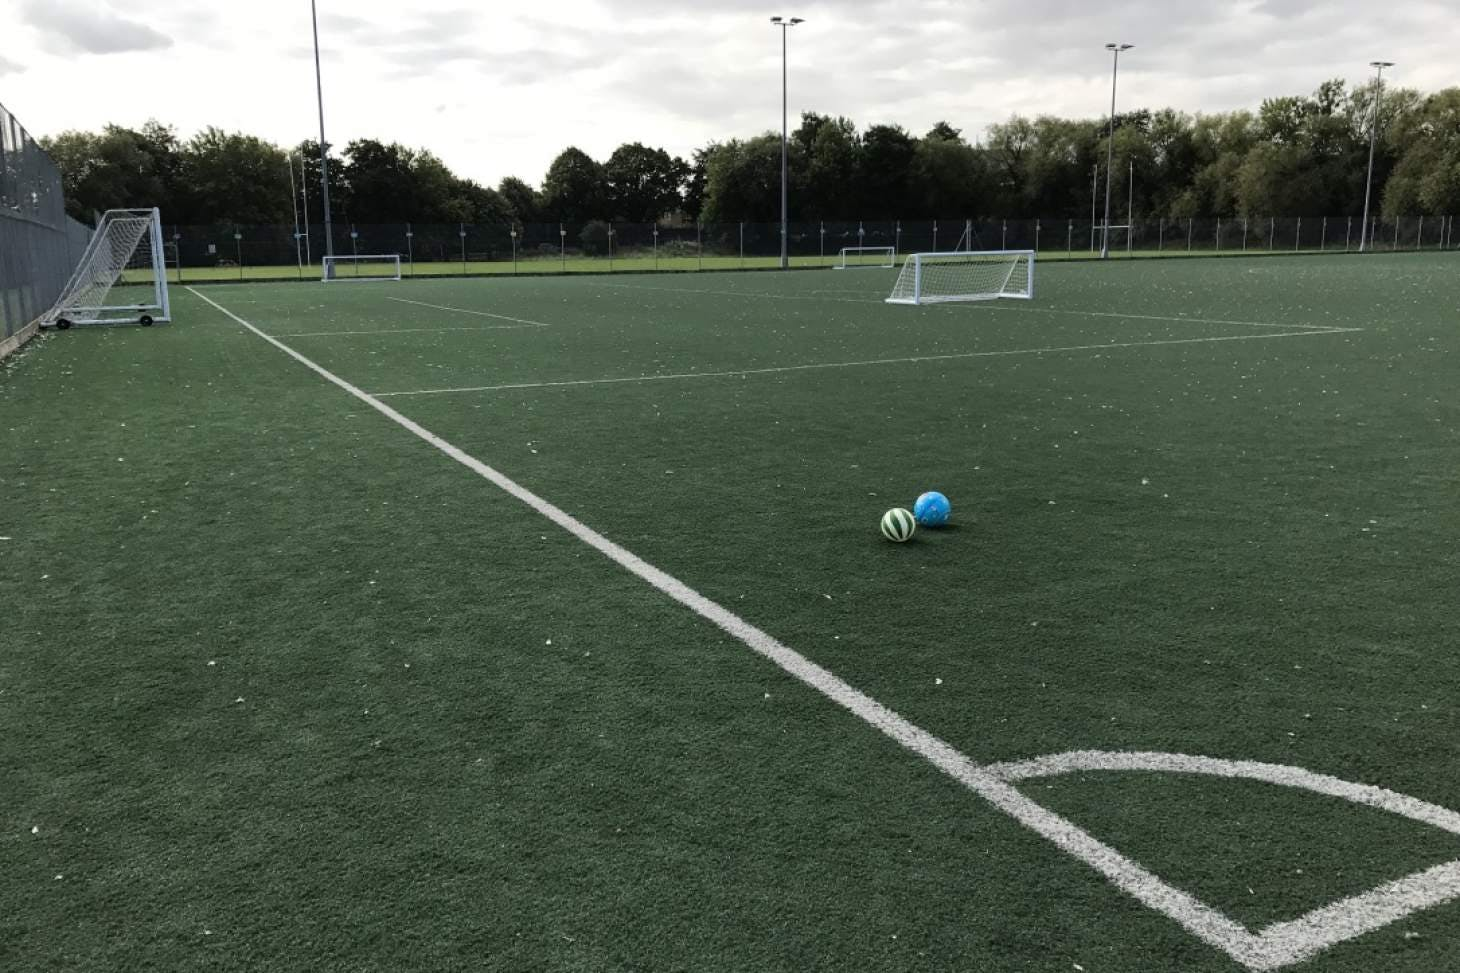 Northampton Leisure & Community Centre 5 a side | 3G Astroturf football pitch